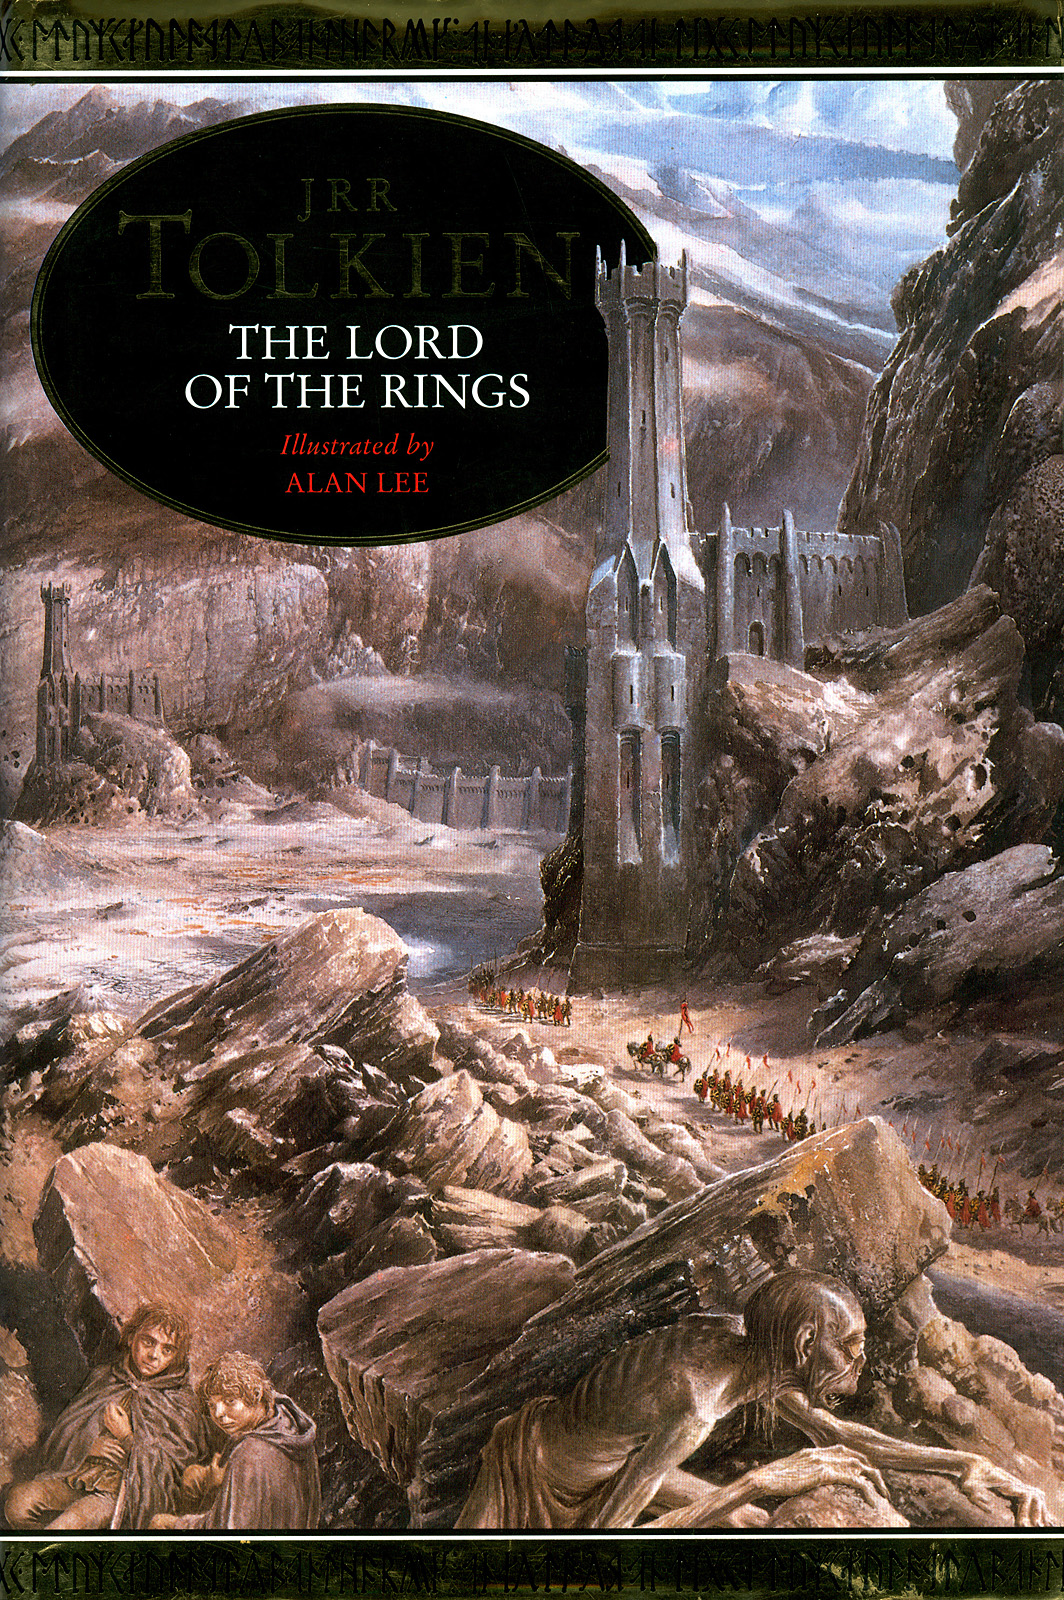 an analysis of the lord of the rings and the hobbit by j r r tolkien In jrr tolkien's fellowship of the ring, the struggle for power over middle-earth and the formation and battle of opposing forces of good and evil is the primary focus in the lord of the rings trilogy the main conflicts seen and foreshadowed in fotr are man versus man, and man versus nature.